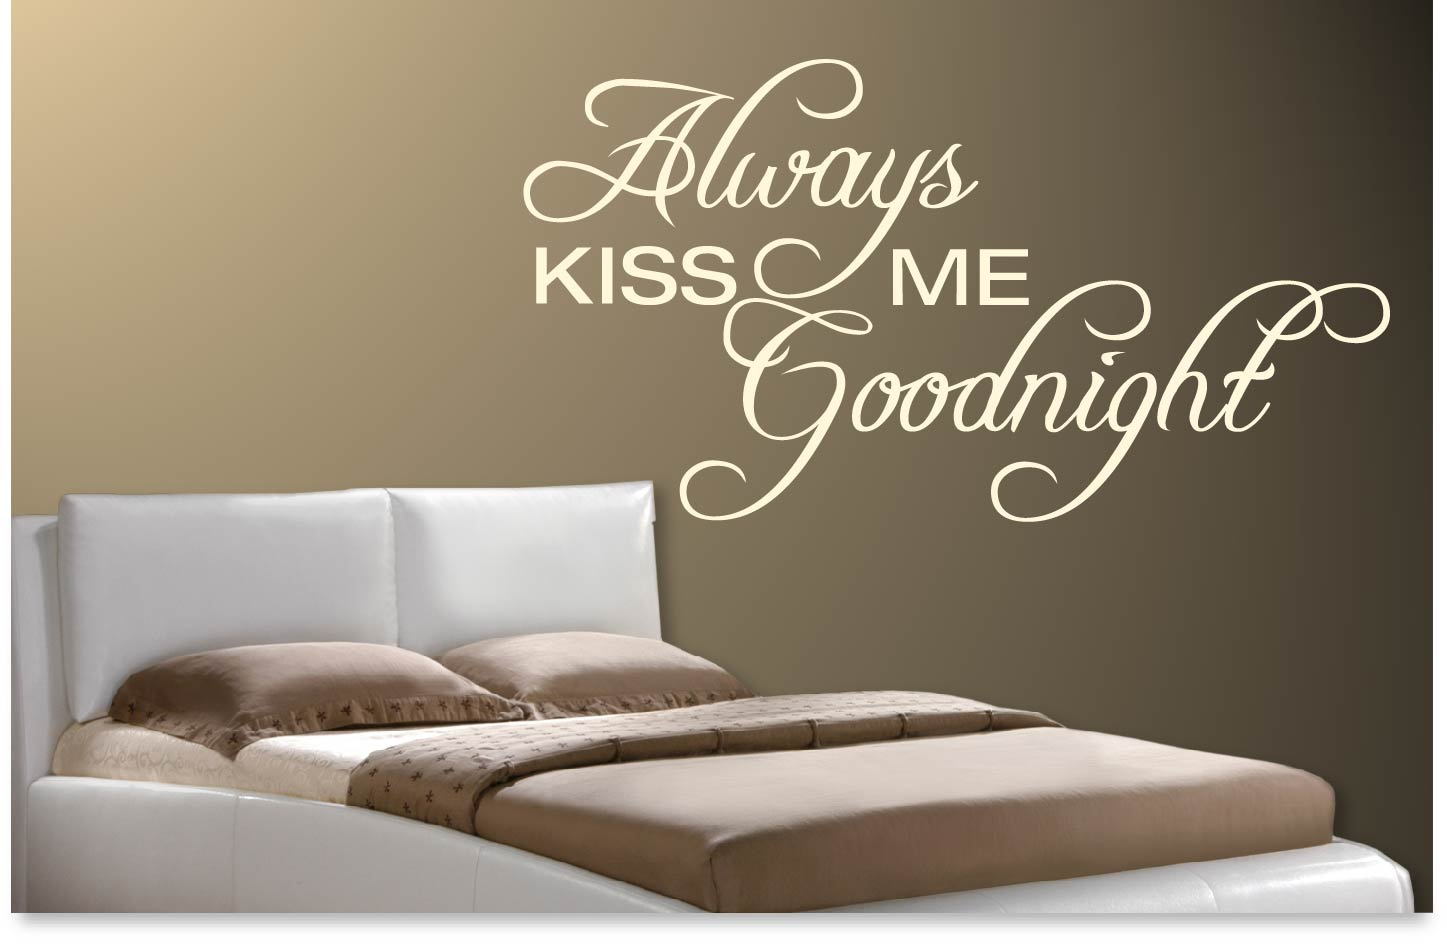 Muursticker Always kiss me goodnight | De Fabriek Muurstickers